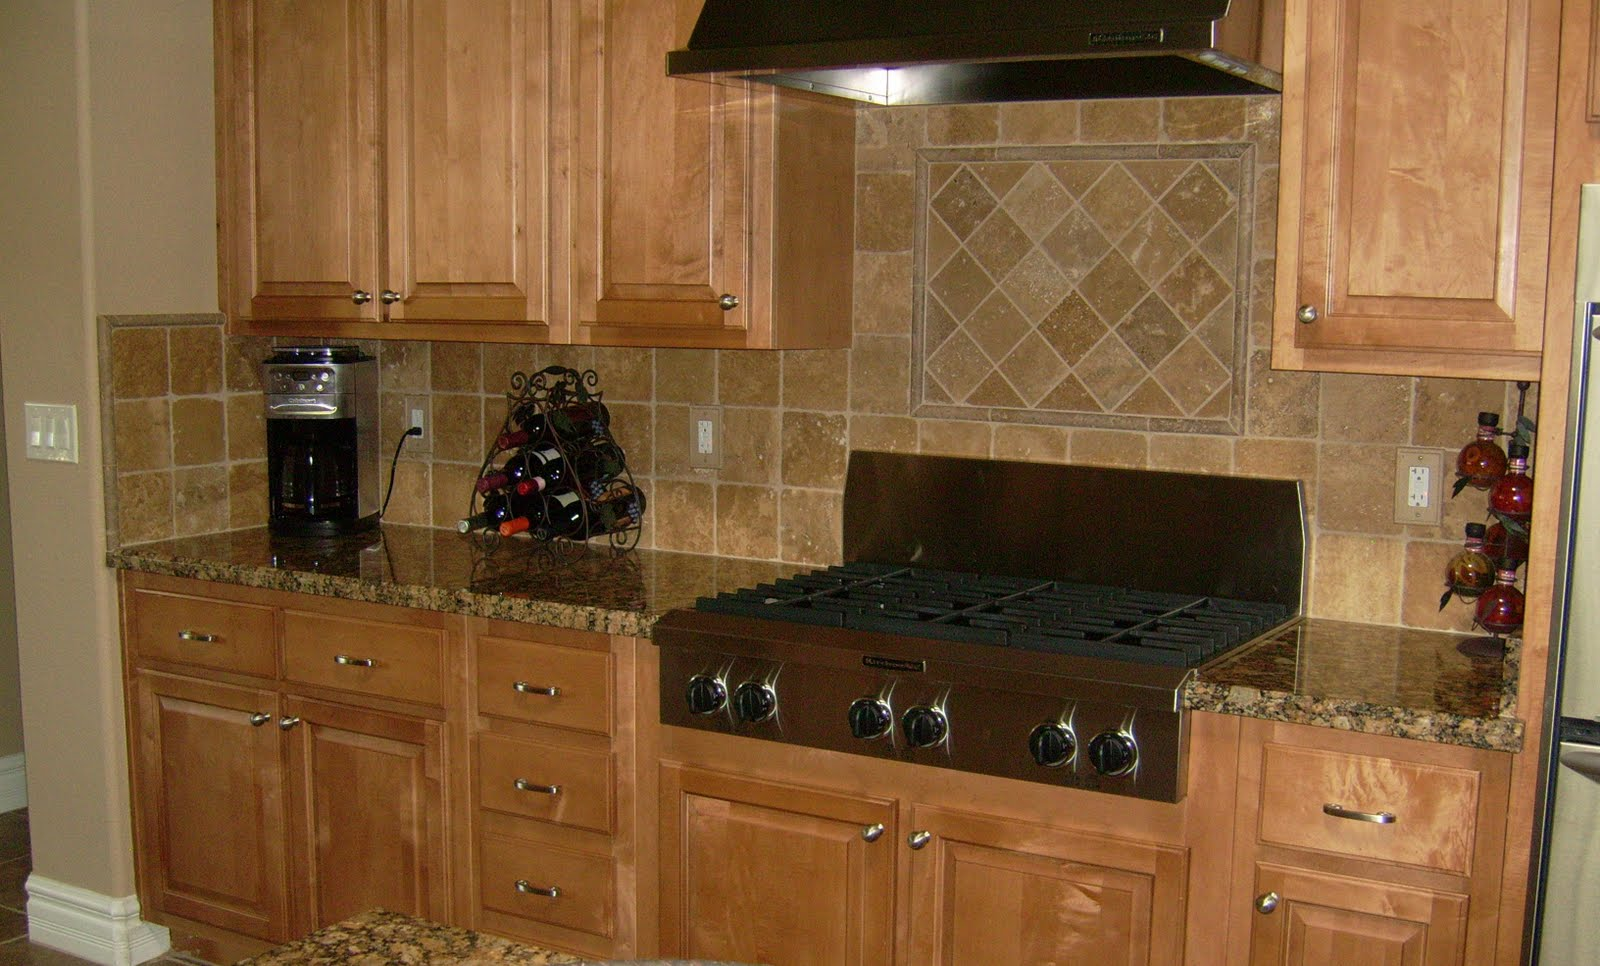 kitchen plans on Pictures Kitchen Backsplash Ideas 6x6 Tumbled Stone Kitchen Backsplash ...